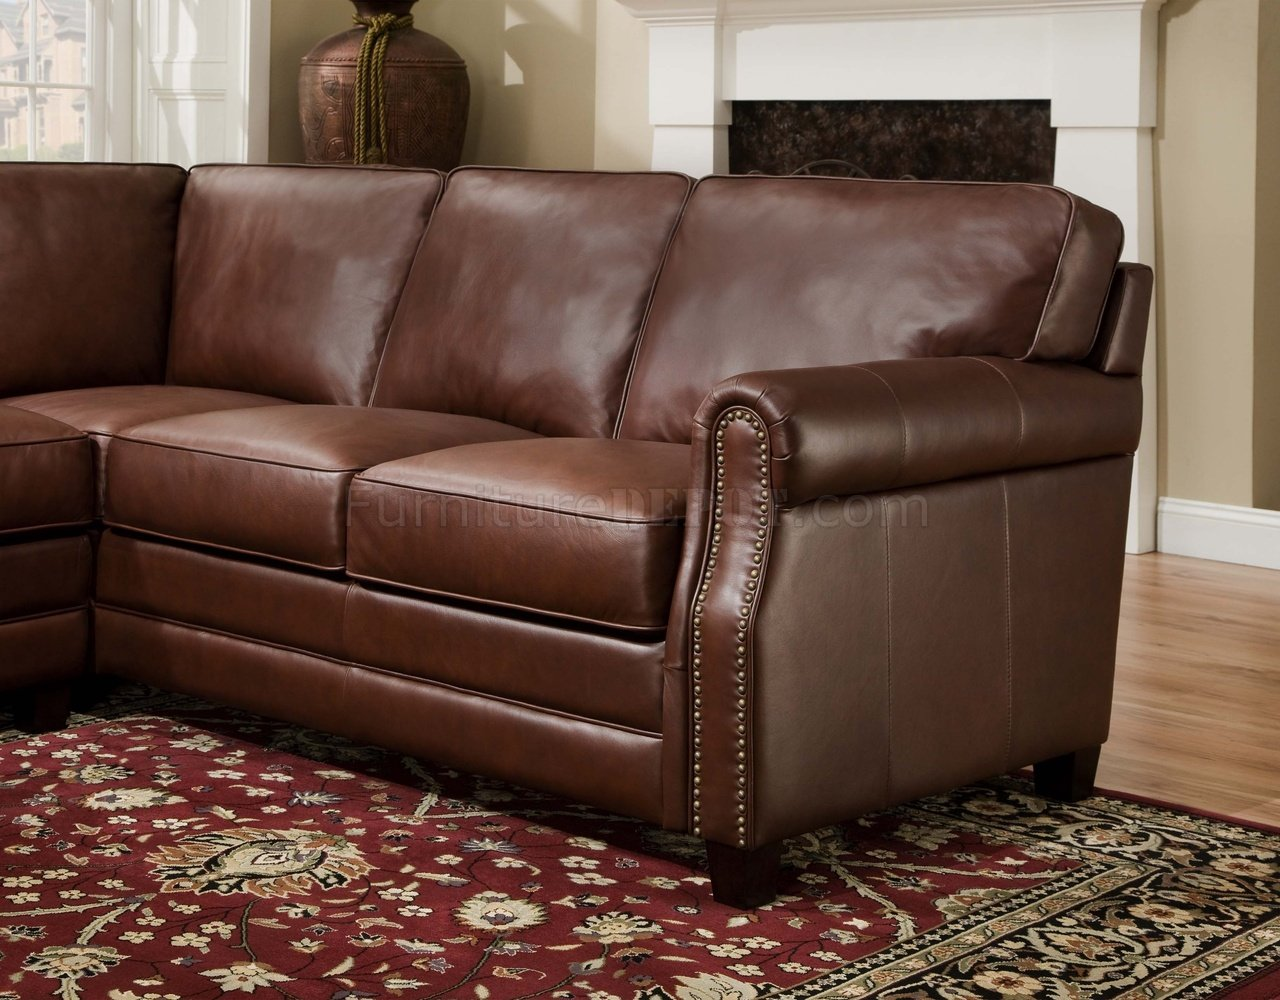 Cocoa Brown Top Grain Italian Leather Traditional